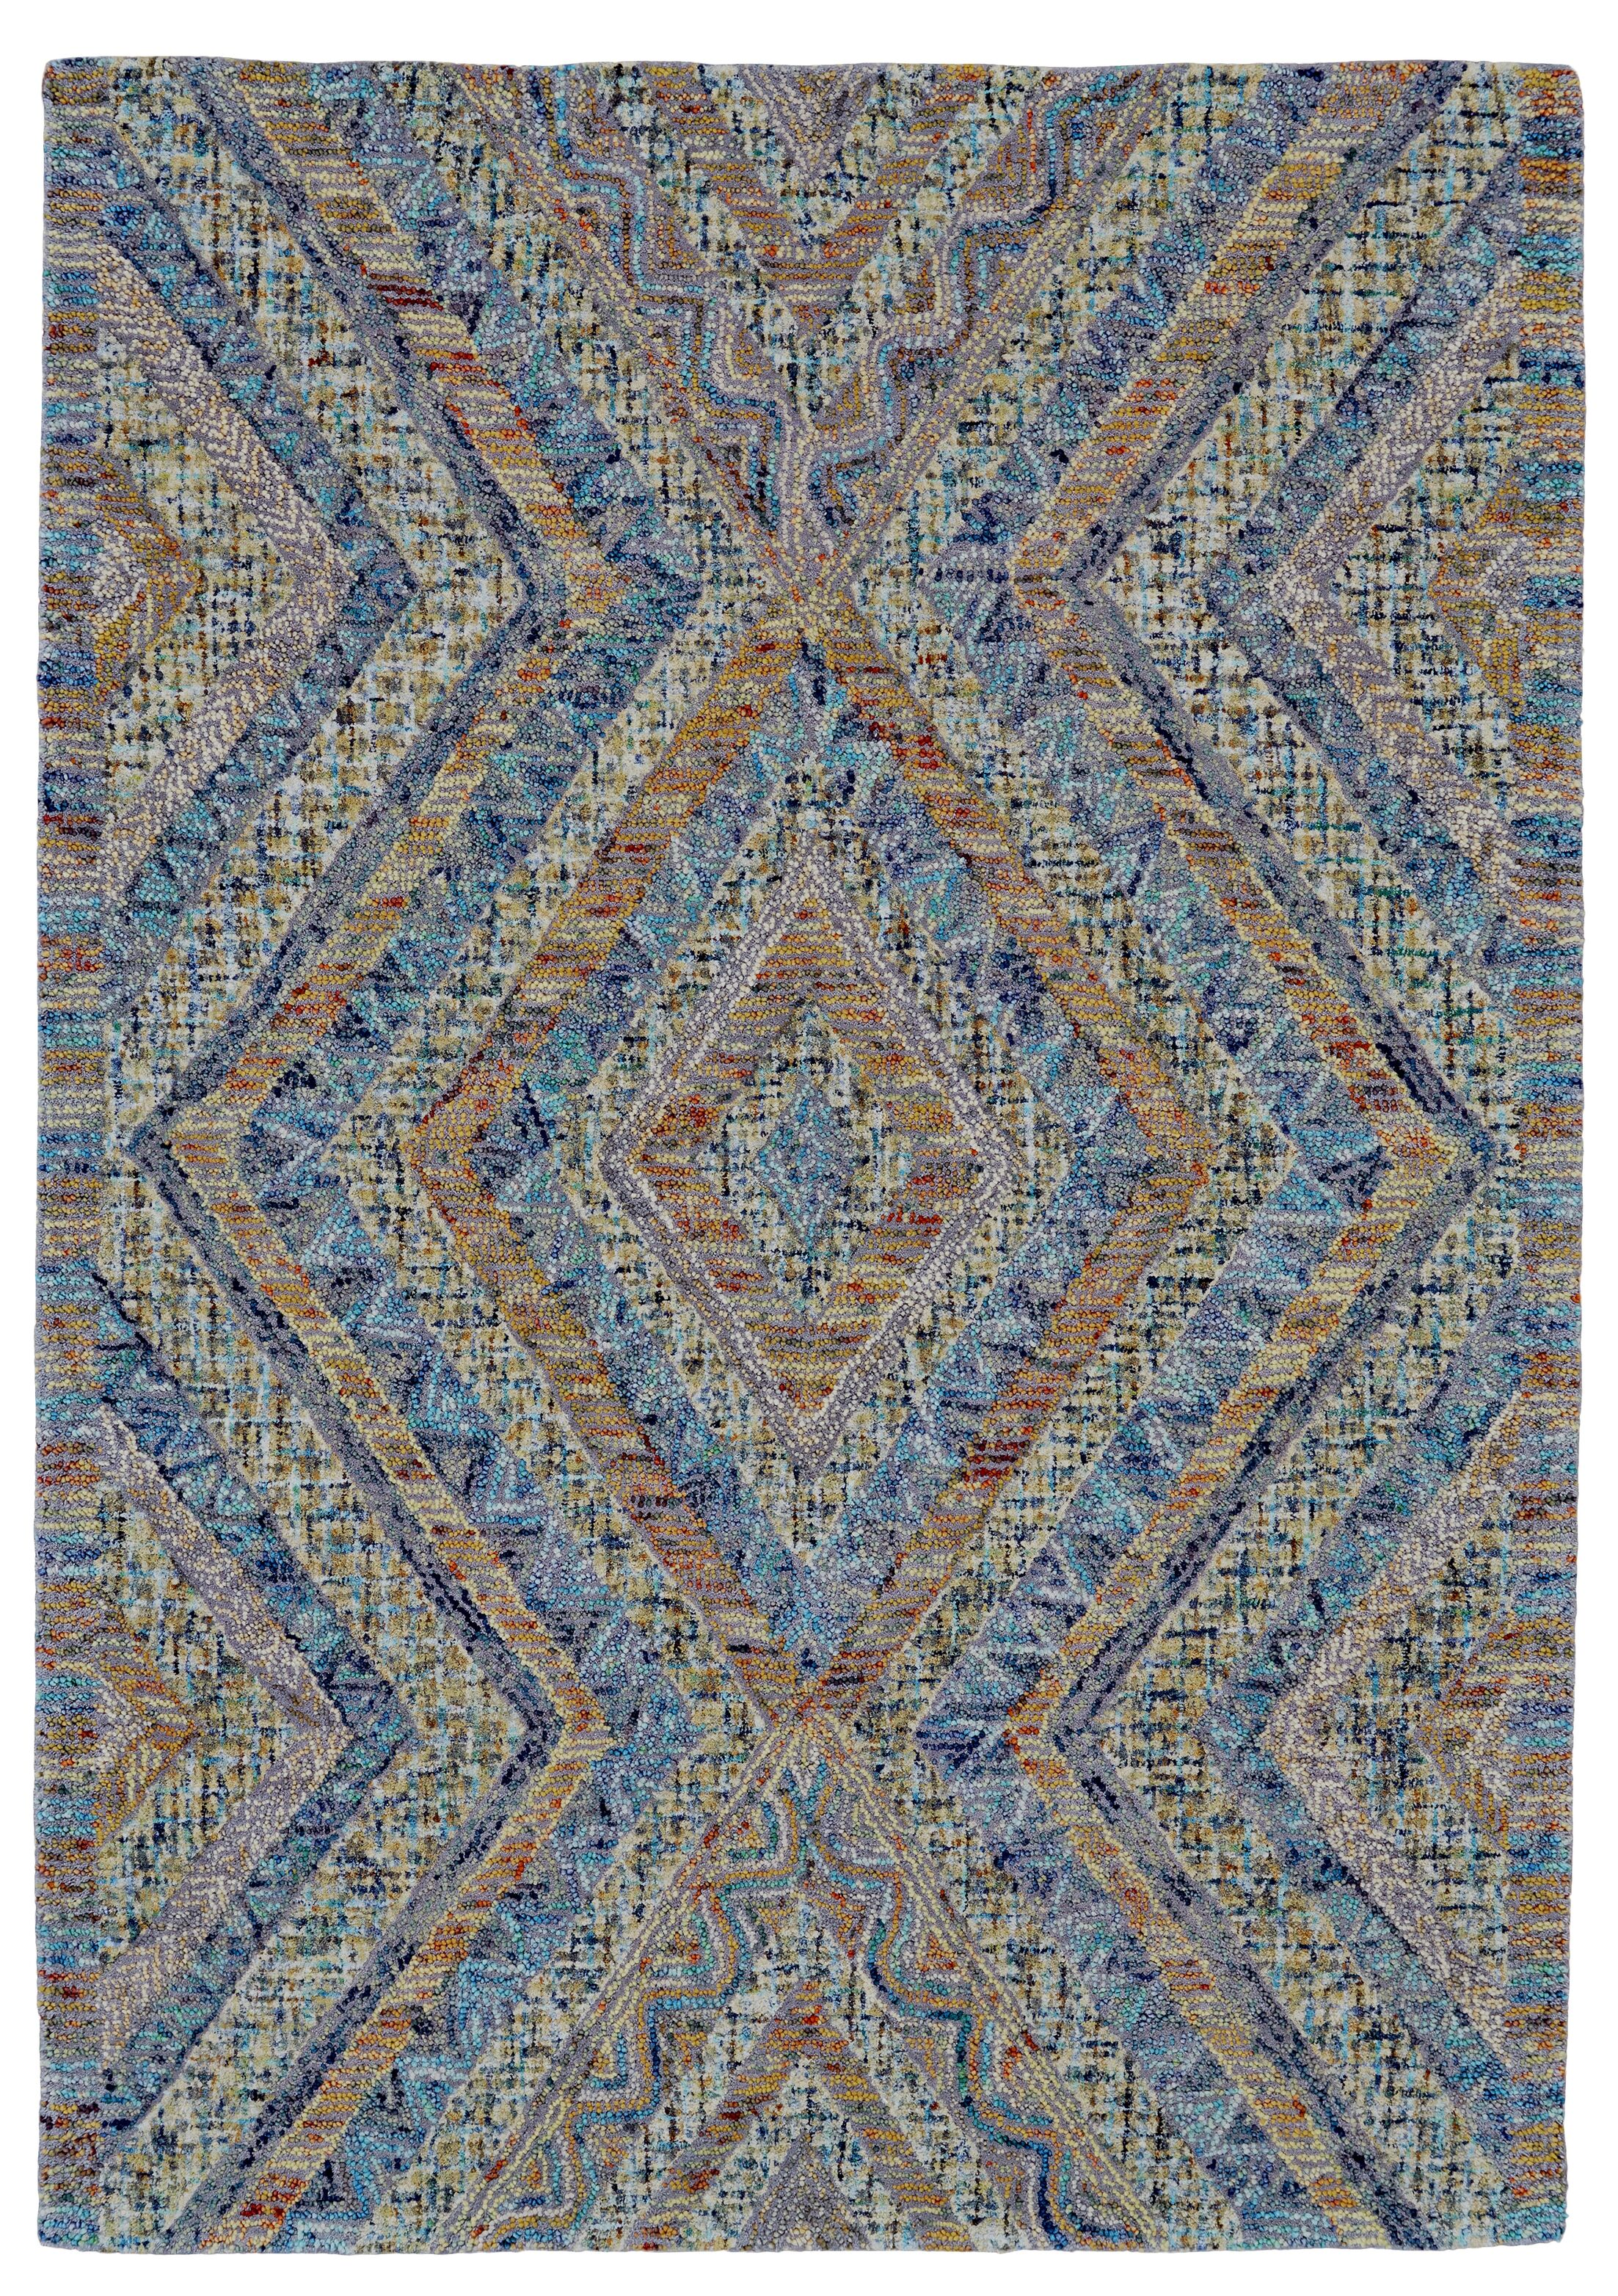 Haeli Hand-Tufted Blue/Gray Area Rug Rug Size: Runner 2'6